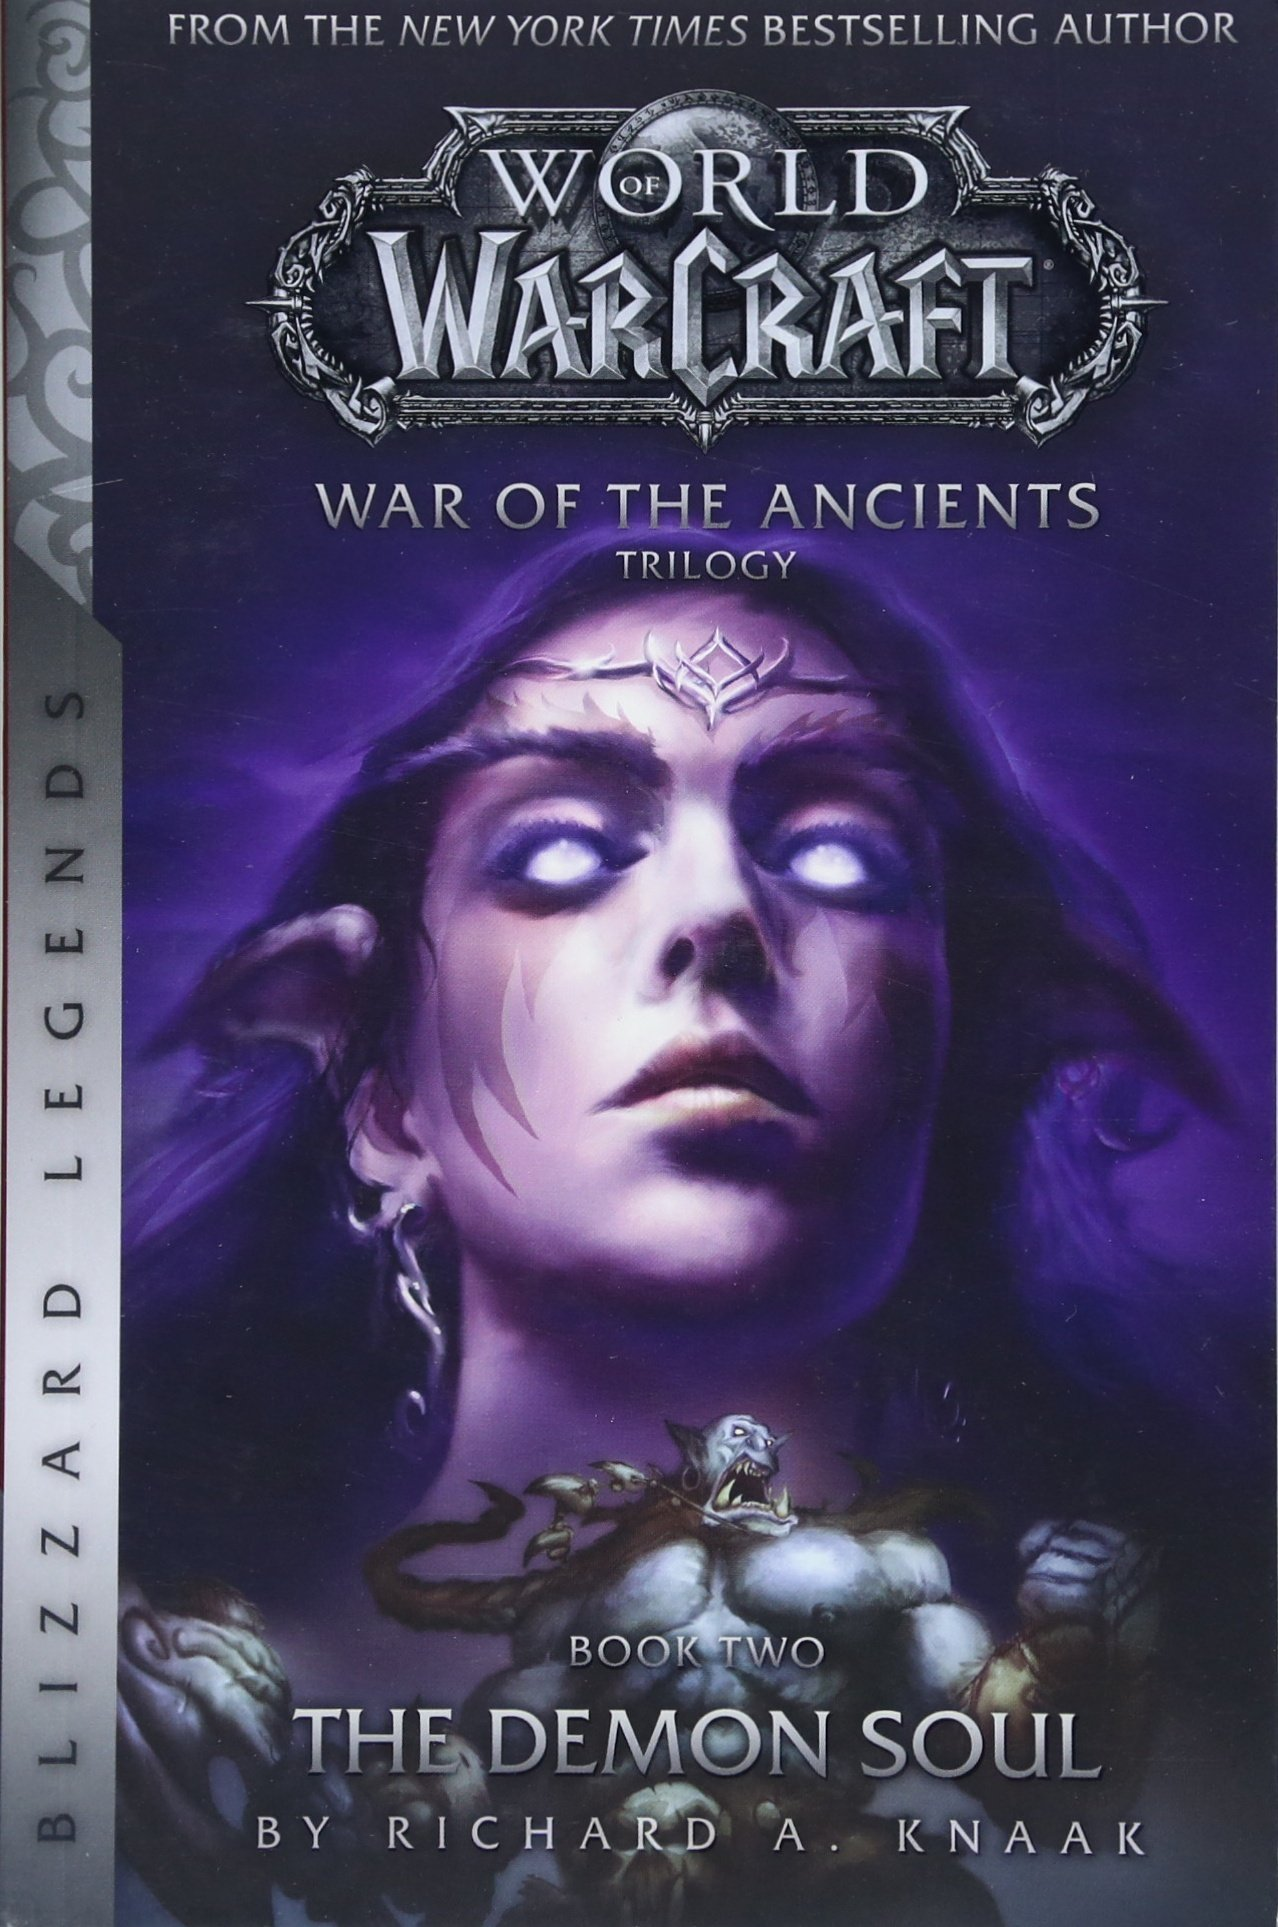 warcraft books in order